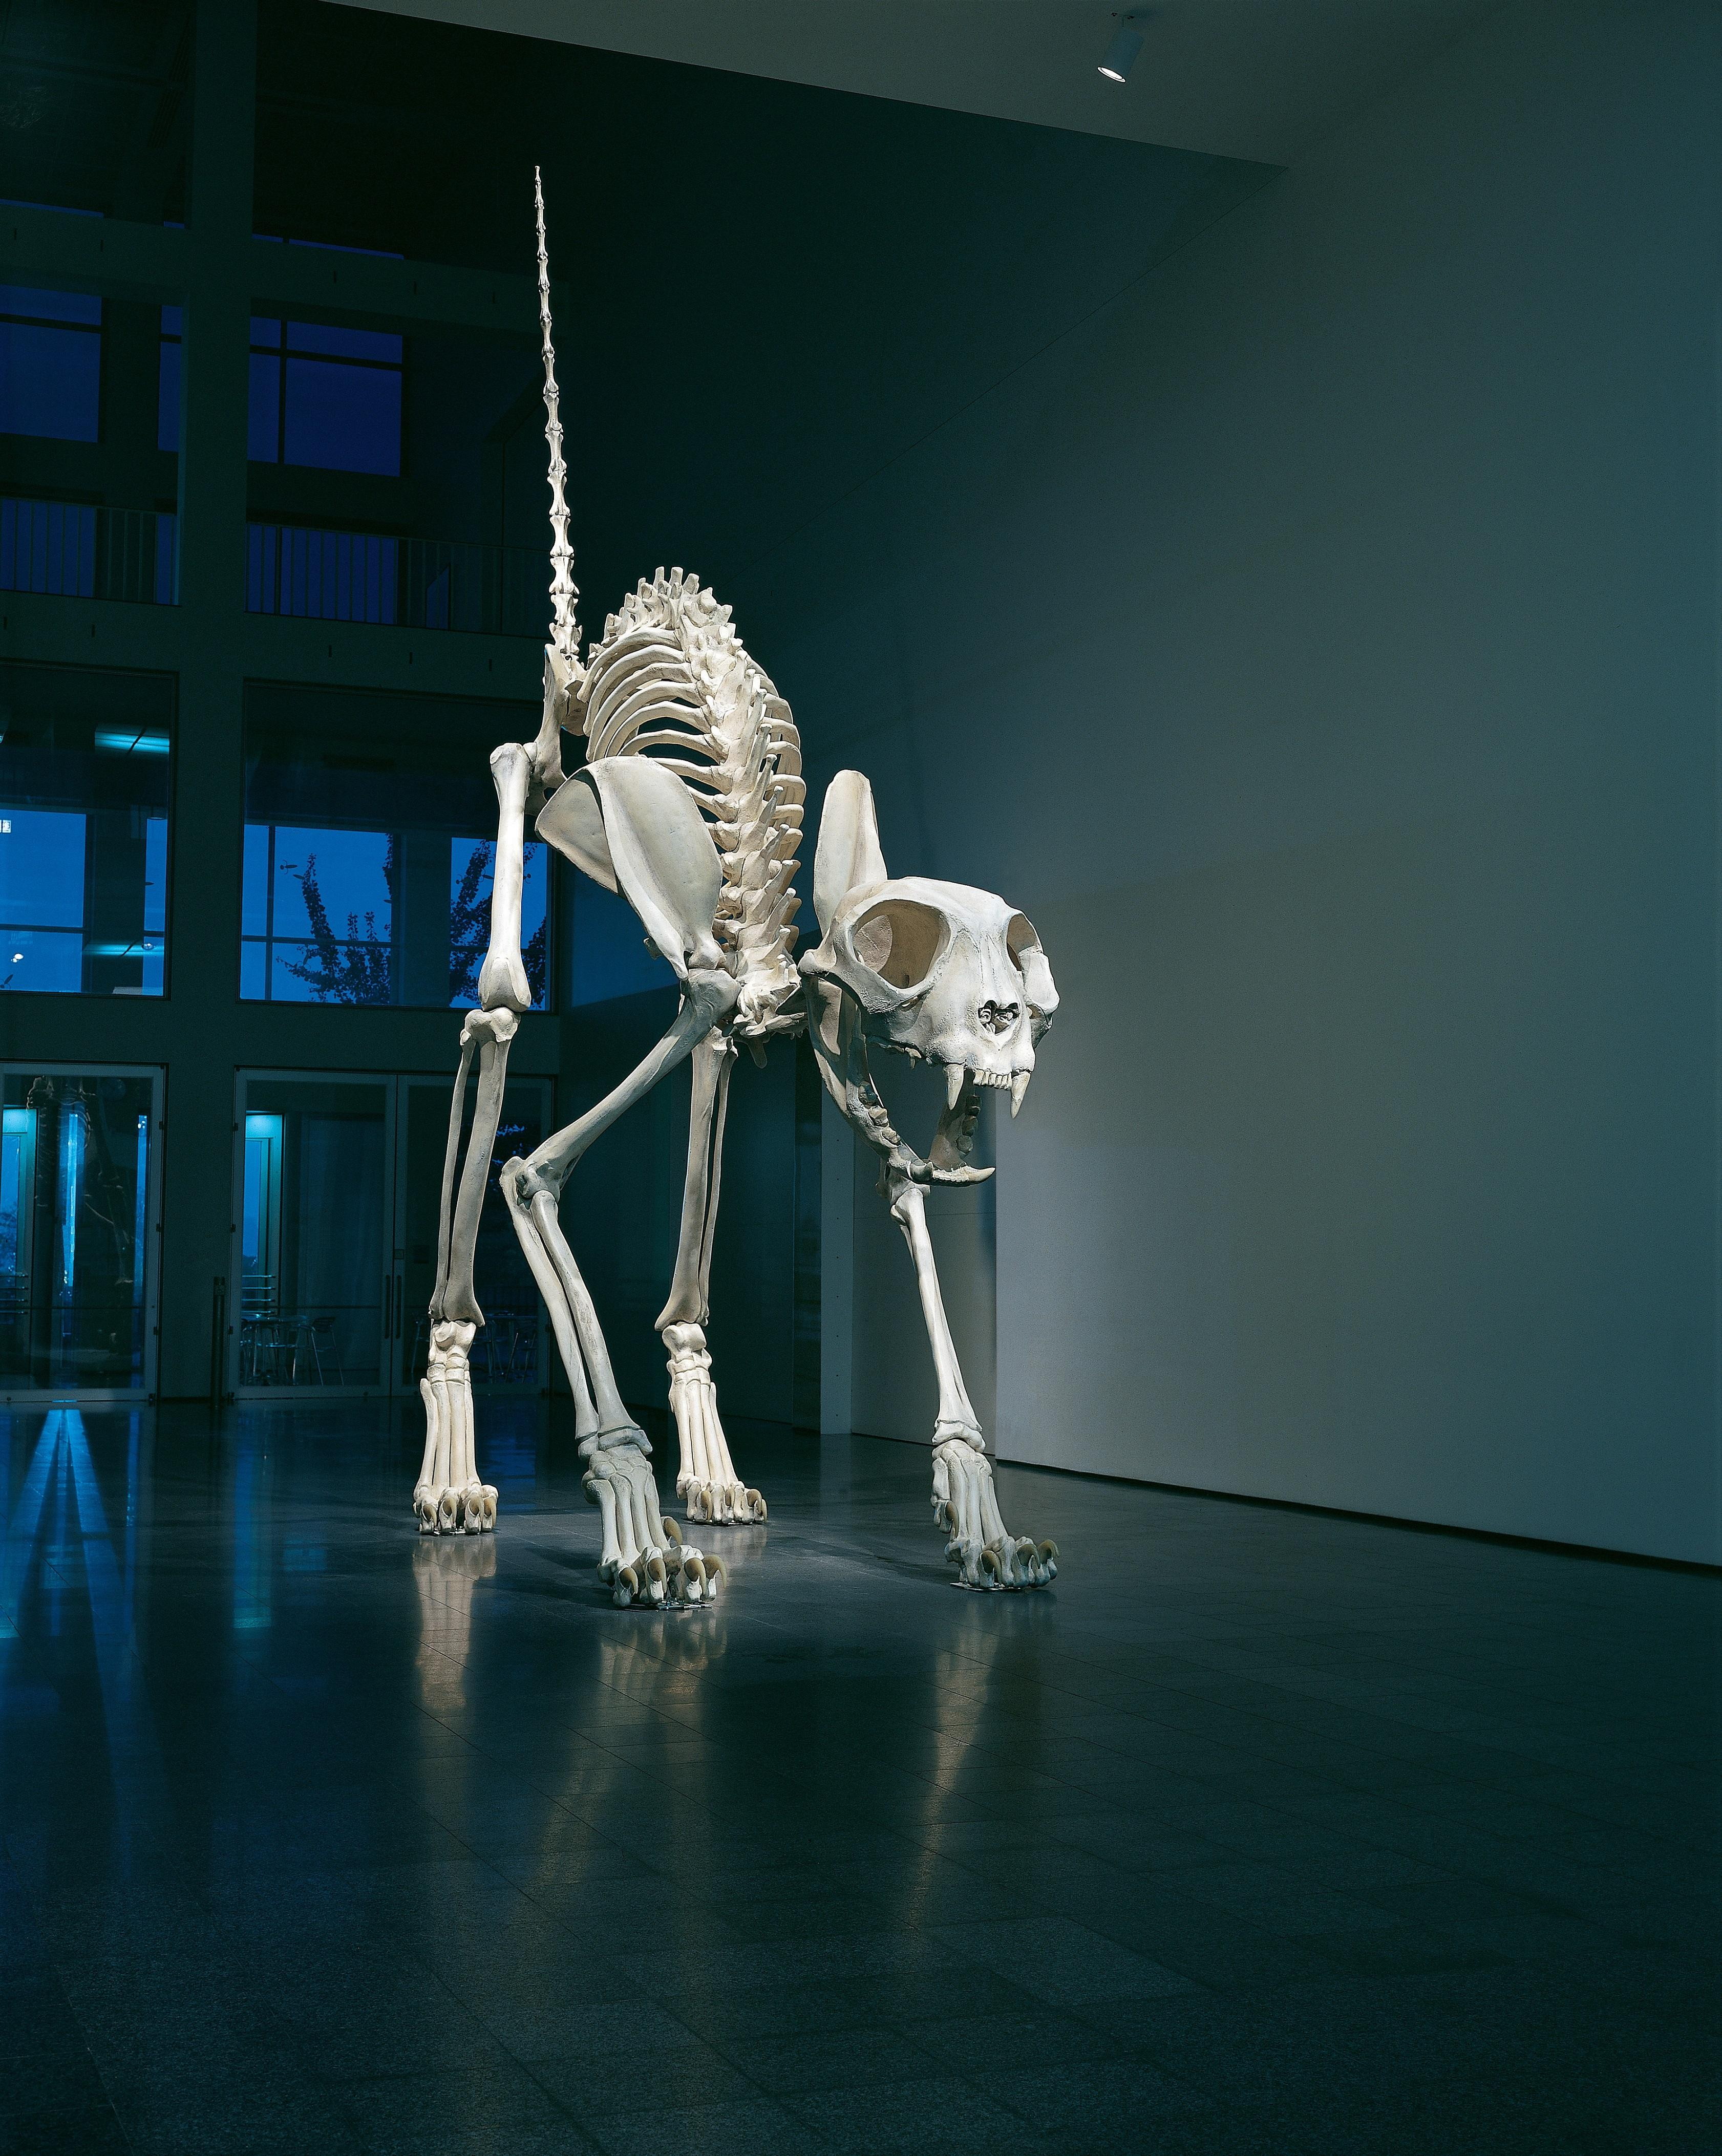 A gargantuan cat skeleton appears in the center of a large atrium with its back arched and its tail pointed straight up in the air.